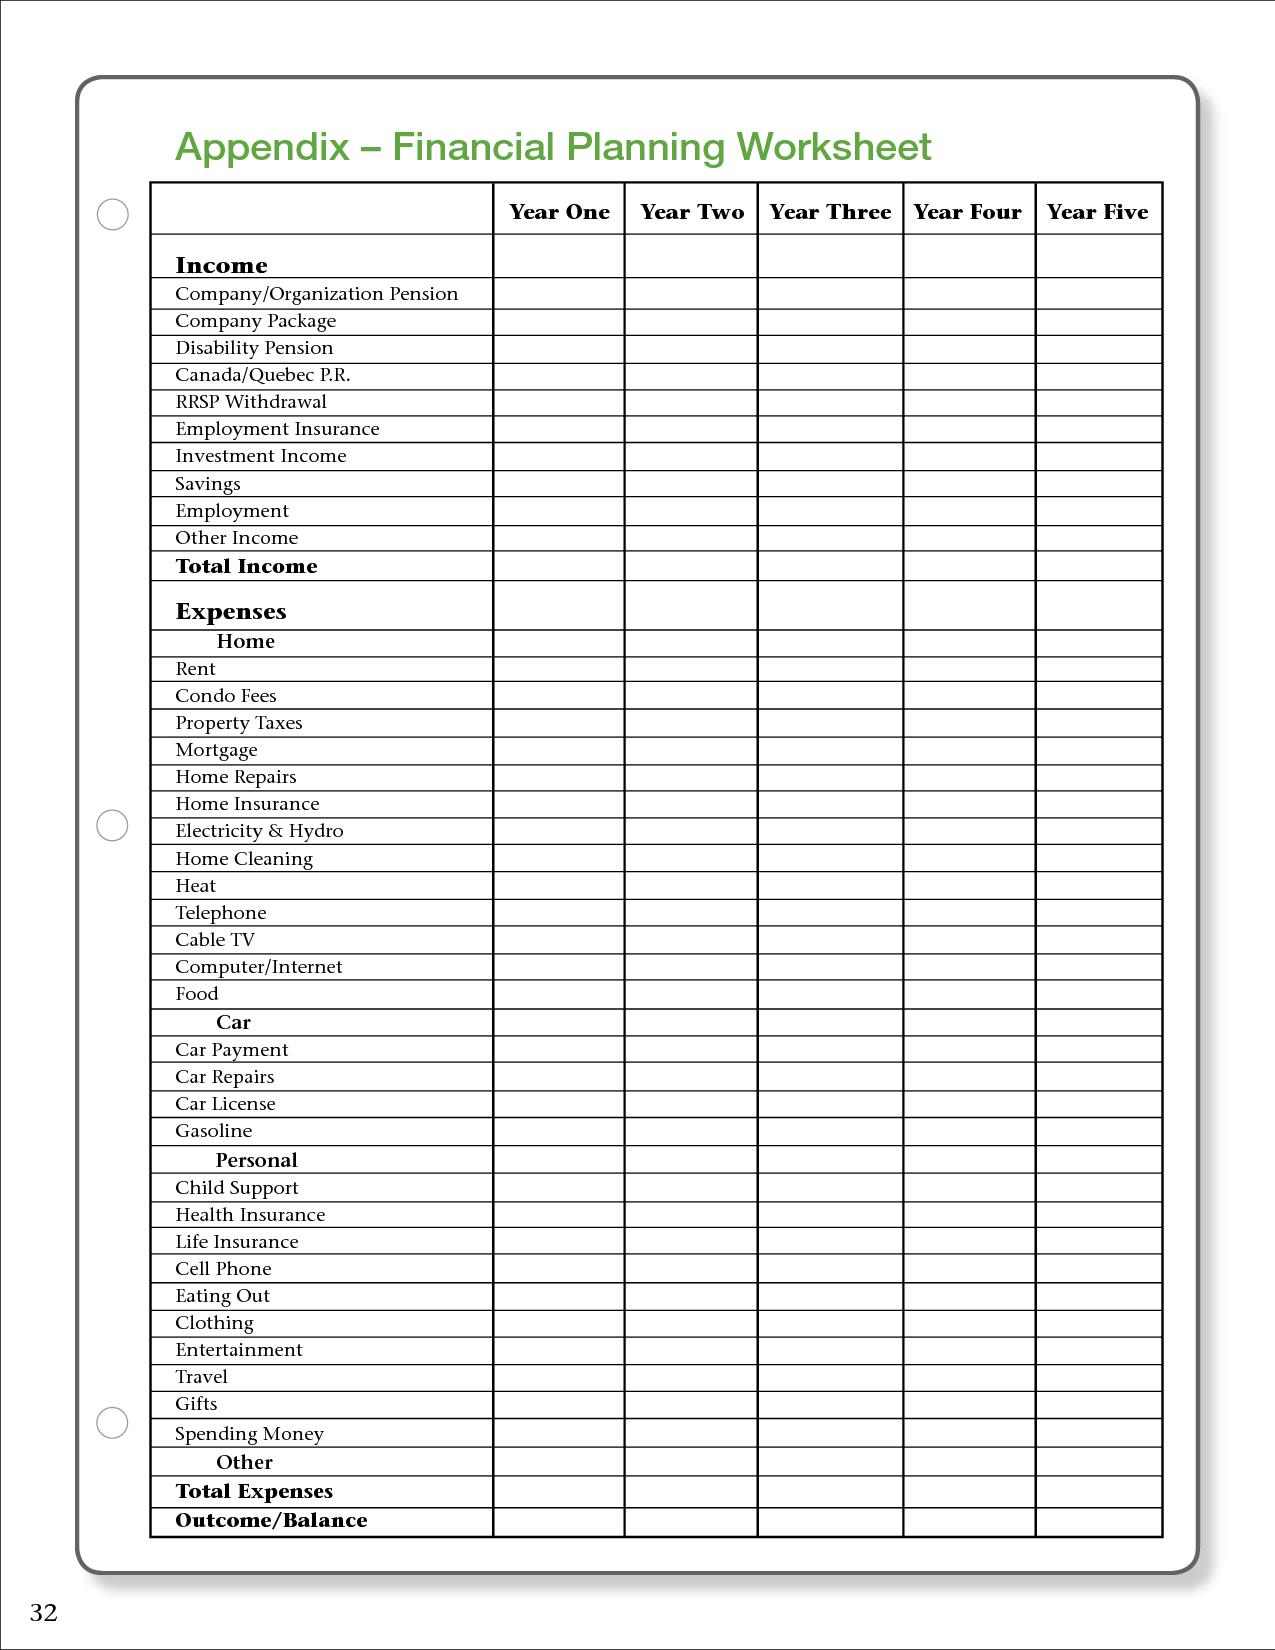 Worksheets Financial Plan Worksheet Cheatslist Free Worksheets For Kids Amp Printable